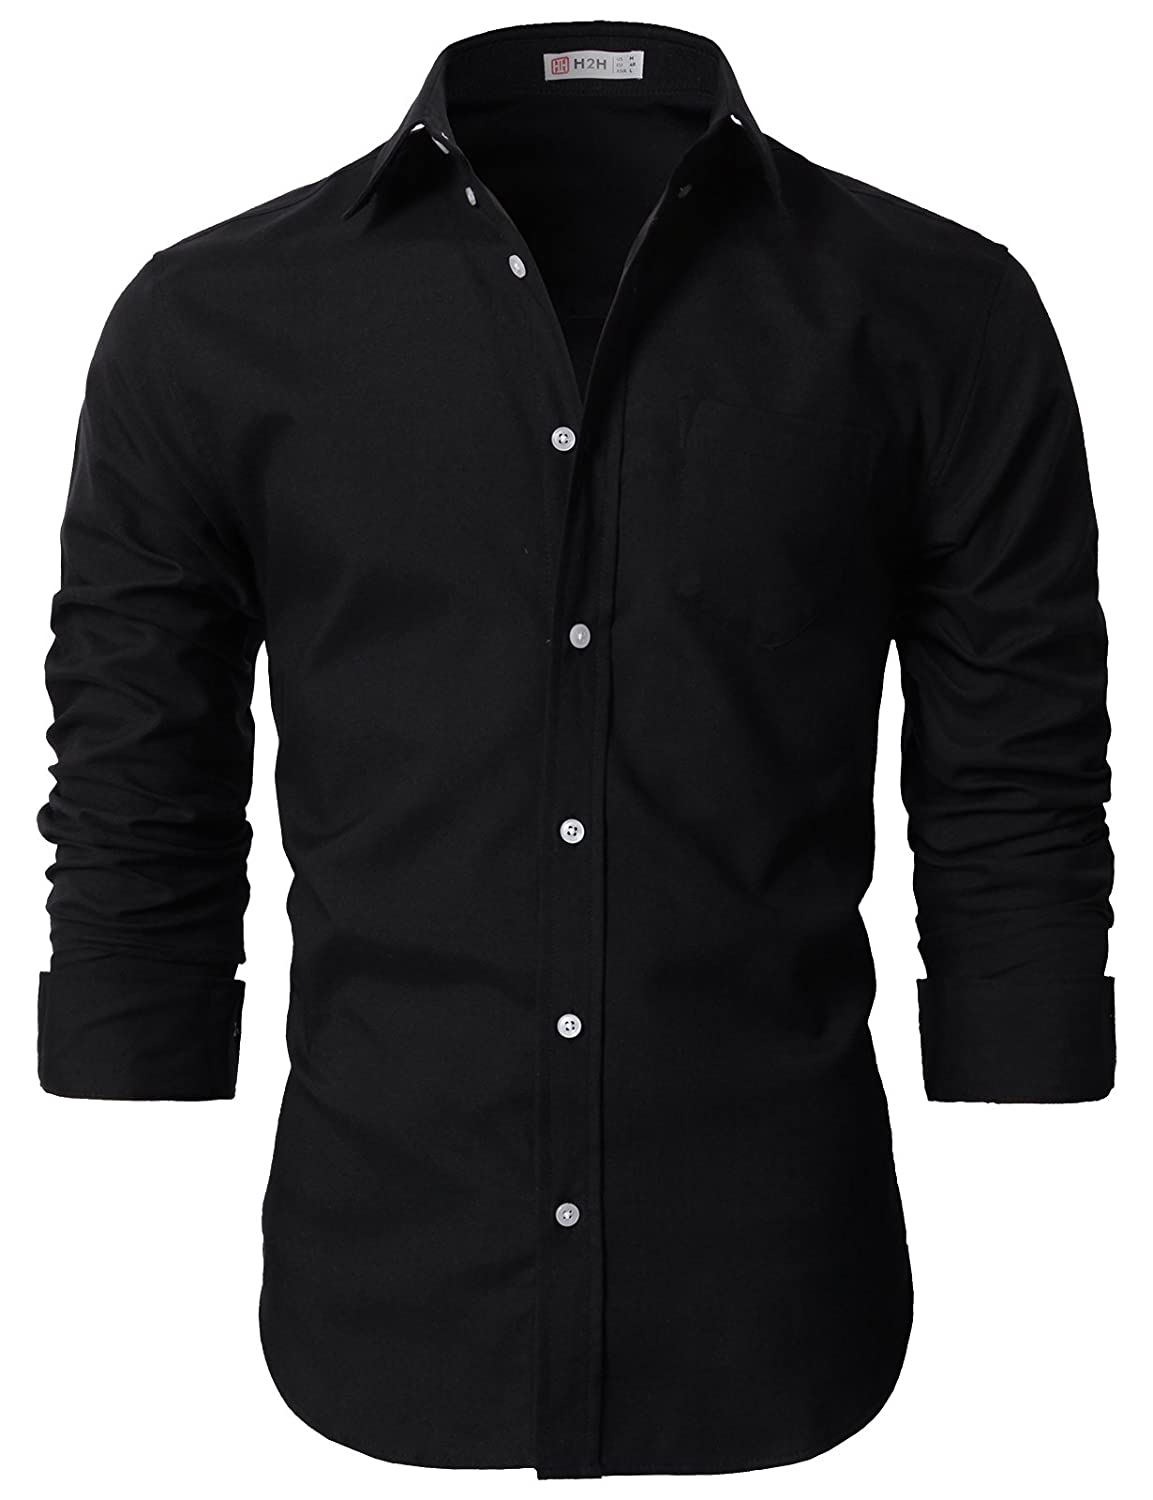 b95fec73ba69 H2H Mens Casual Slim Fit Button-Down Shirts Oxford Long Sleeve Basic  Designed at Amazon Men s Clothing store